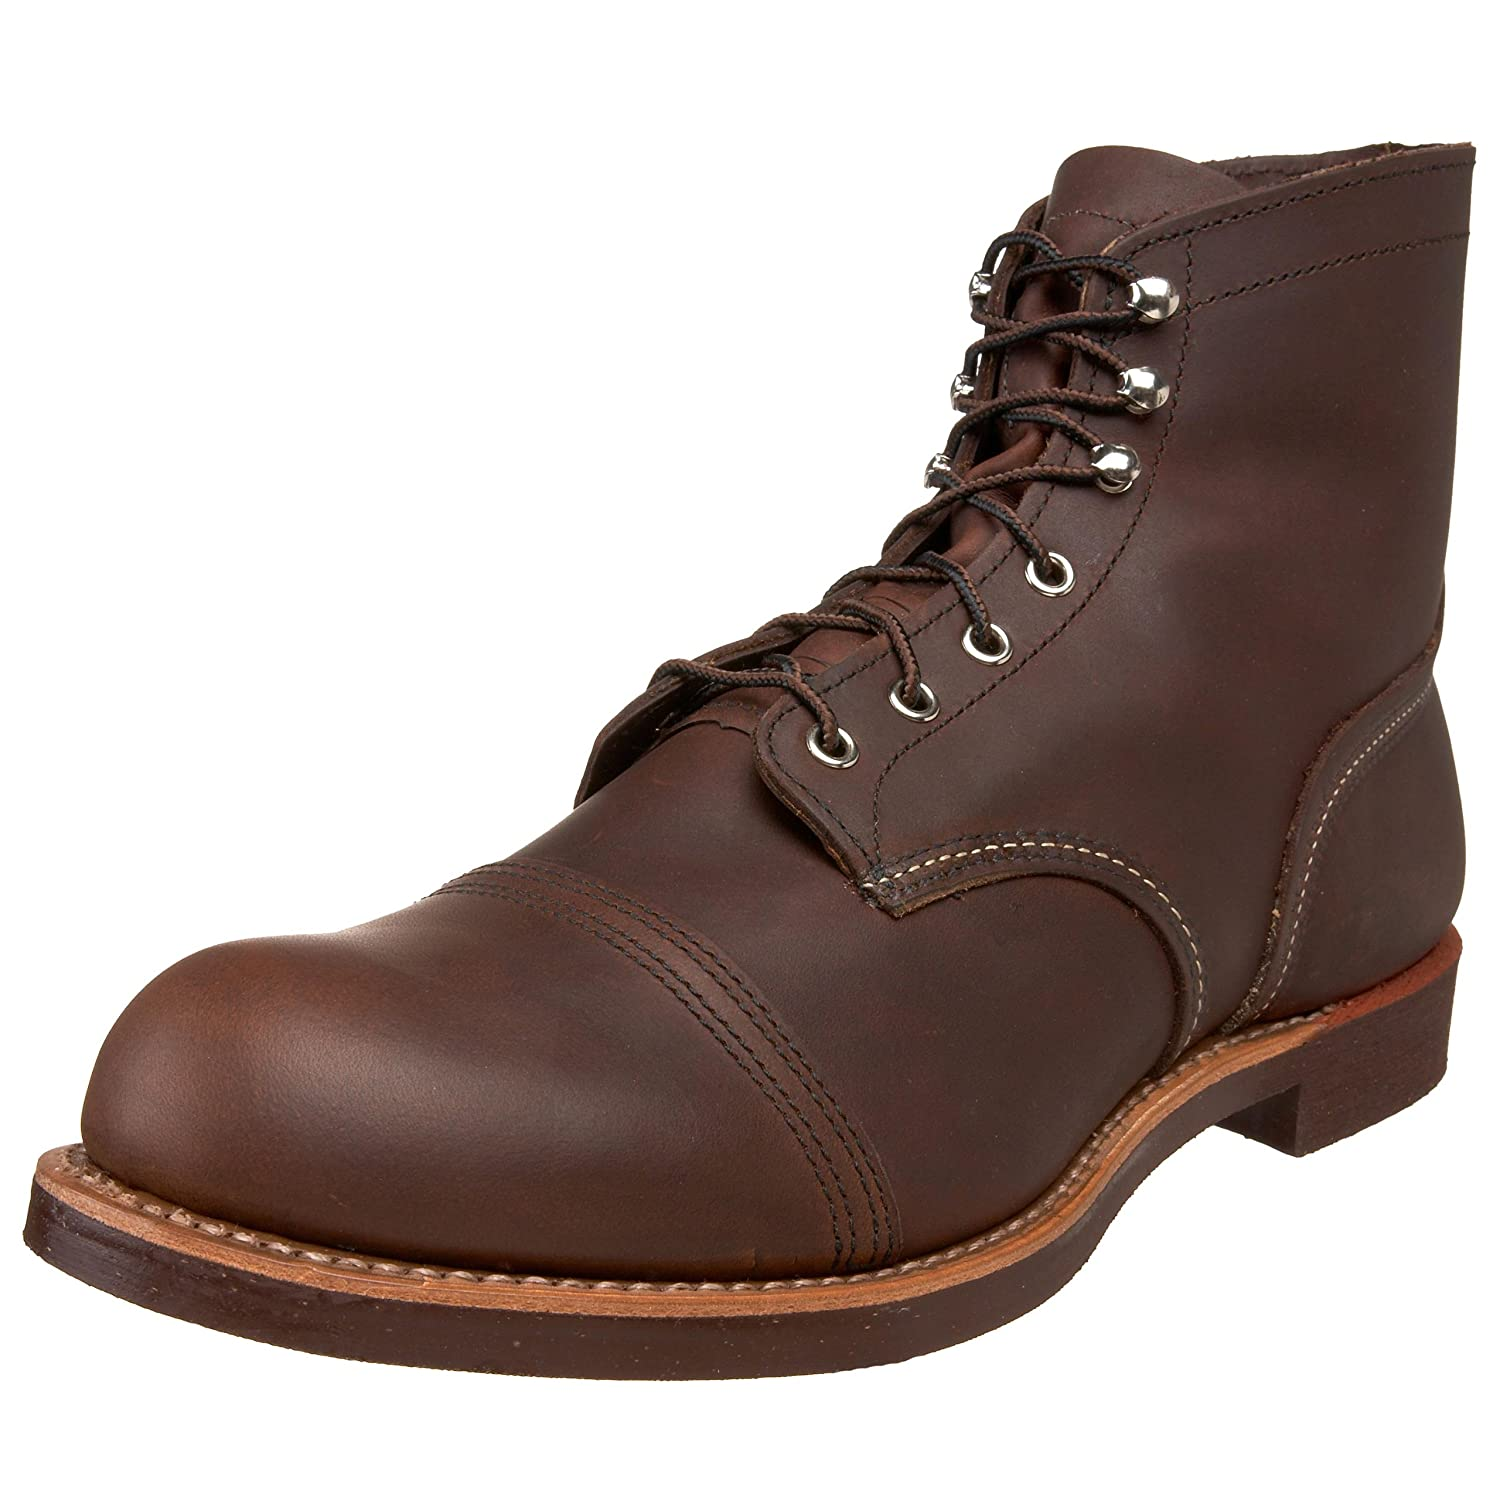 Men's Vintage Christmas Gift Ideas Red Wing Heritage Iron Ranger 6-Inch Boot $239.96 AT vintagedancer.com